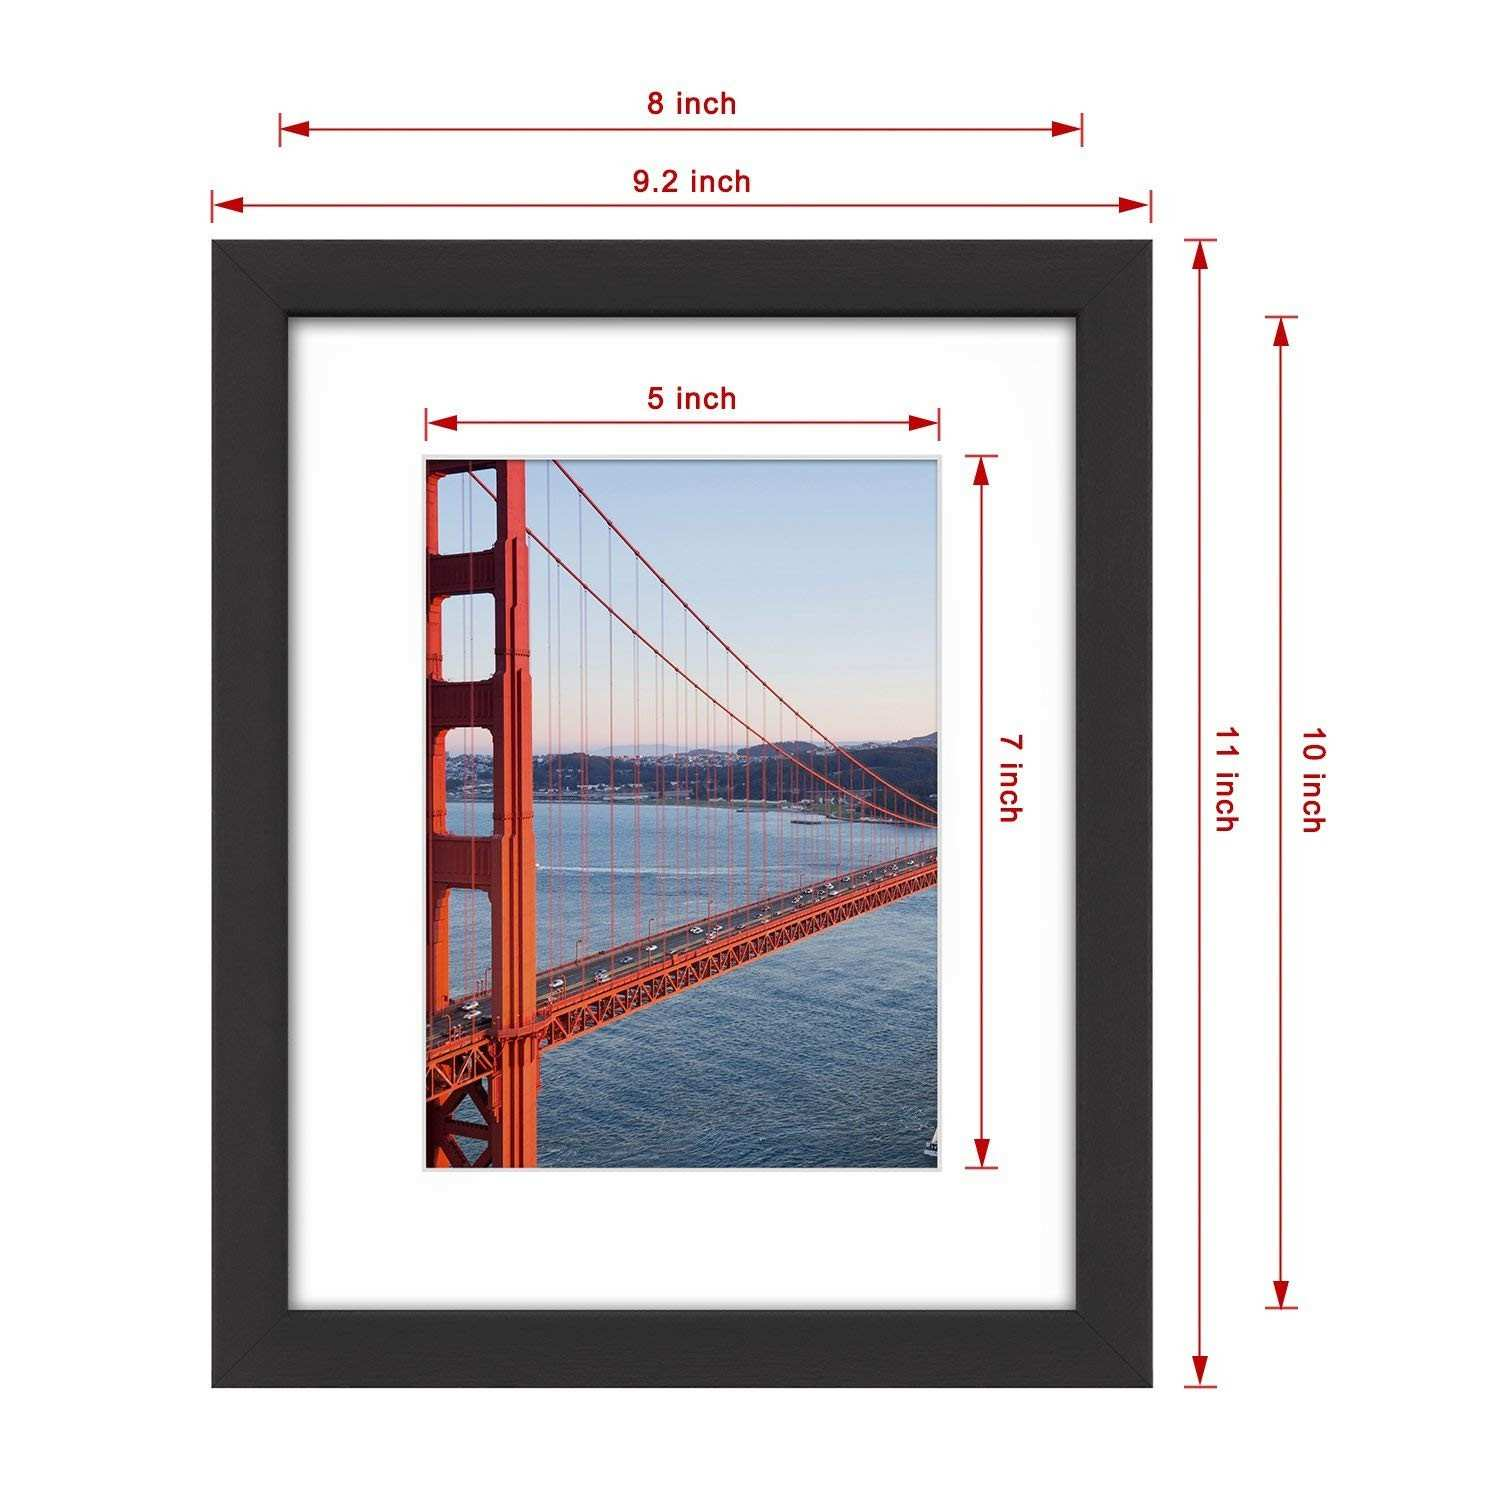 Solid Wood Picture Frames wholesale New Amazon 8—10 Picture Frame